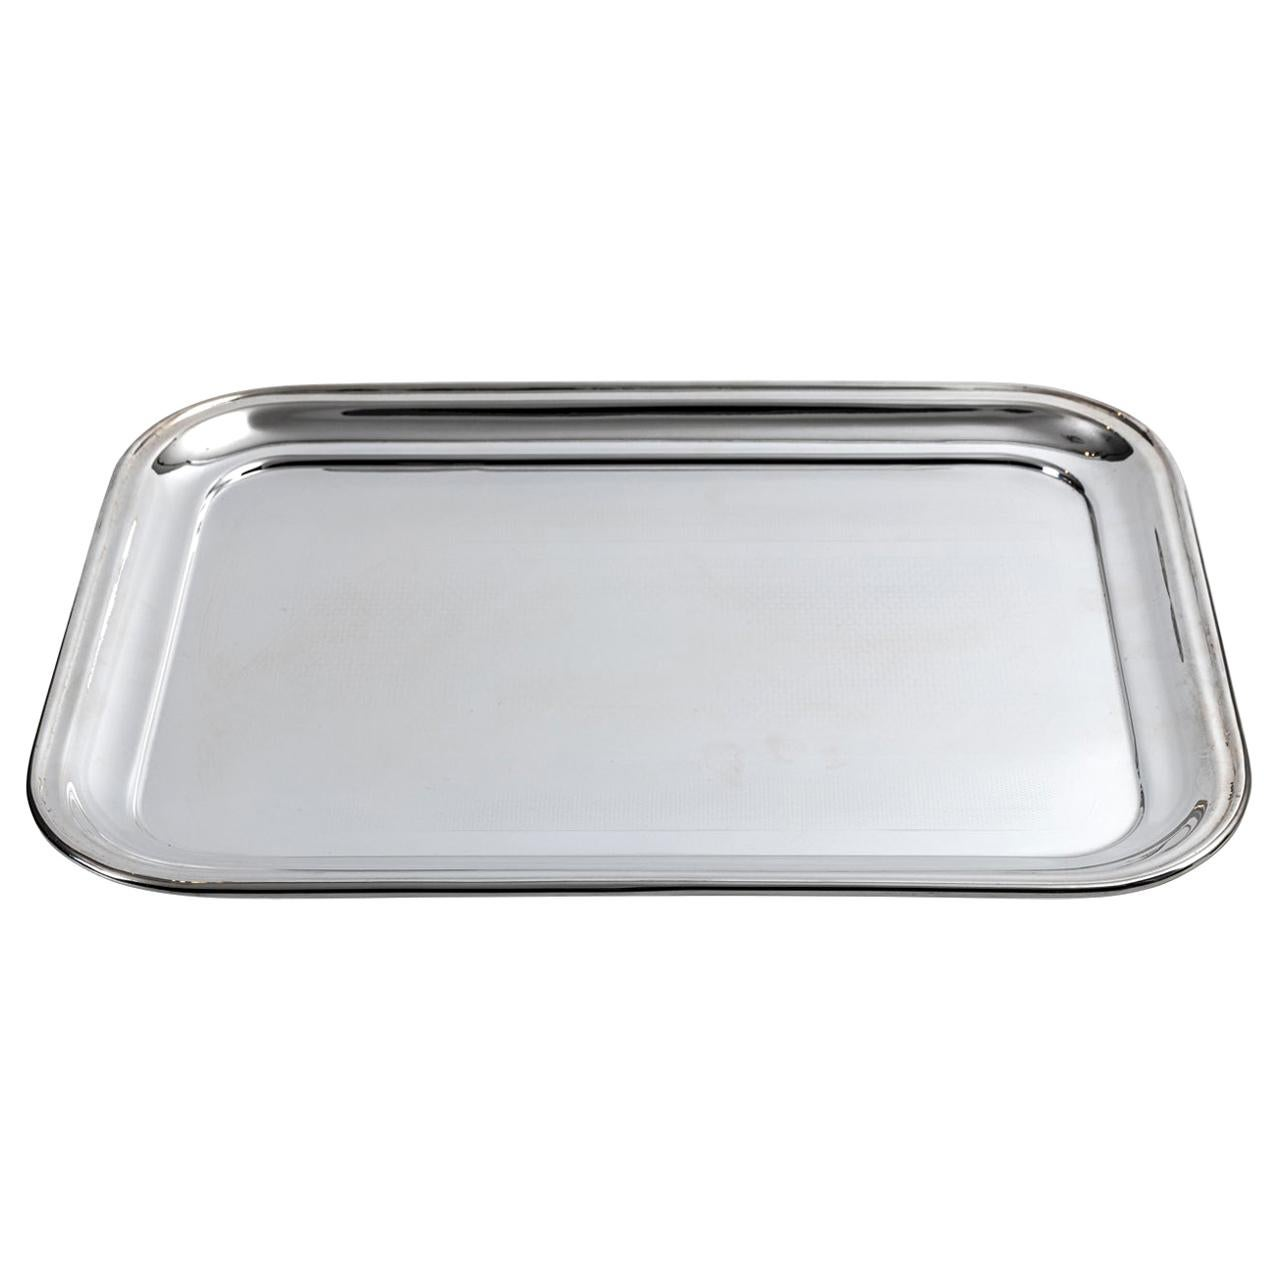 English Art Deco Style Silver Plated Serving Tray